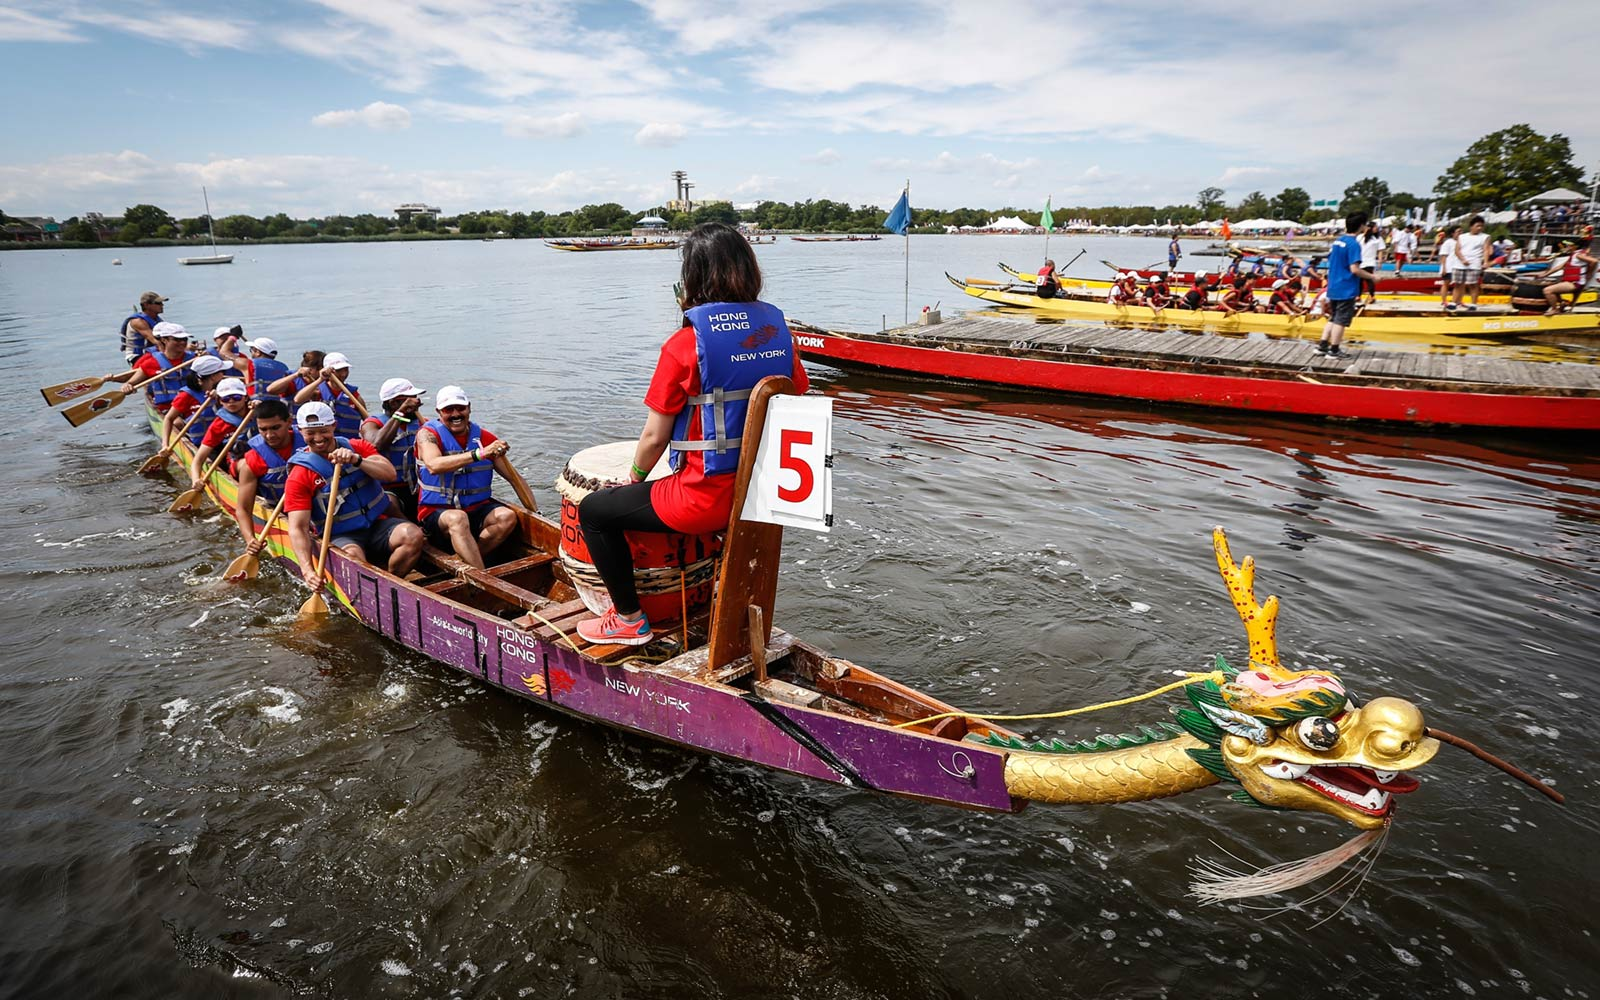 Hong Kong Dragon Boat Festival, Flushing Meadows, Corona Park, New York